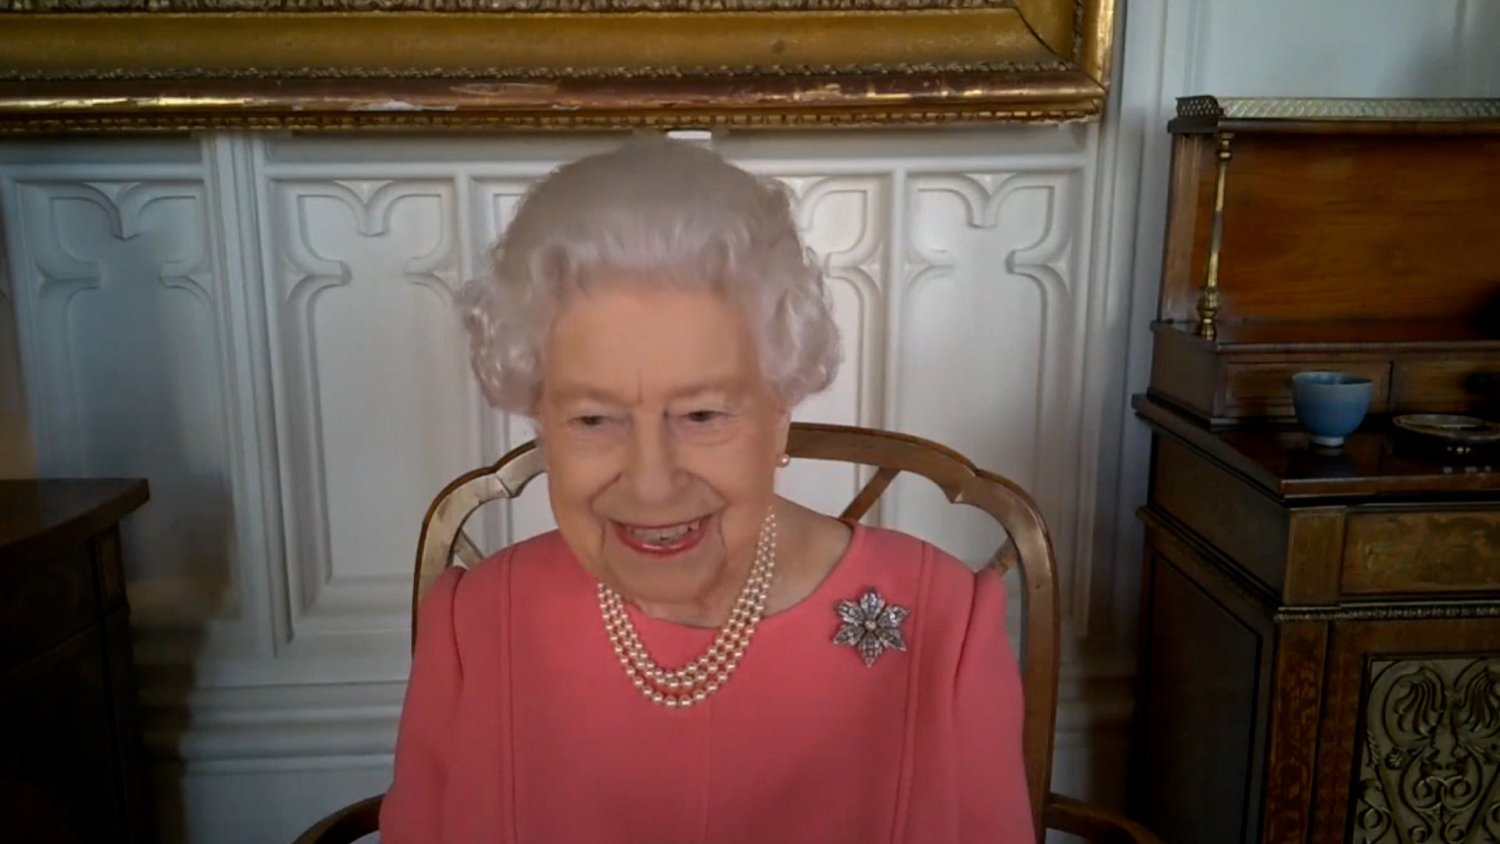 The Queen encouraged people to have the Covid-19 vaccine, saying hers 'didn't hurt at all' (Buckingham Palace)